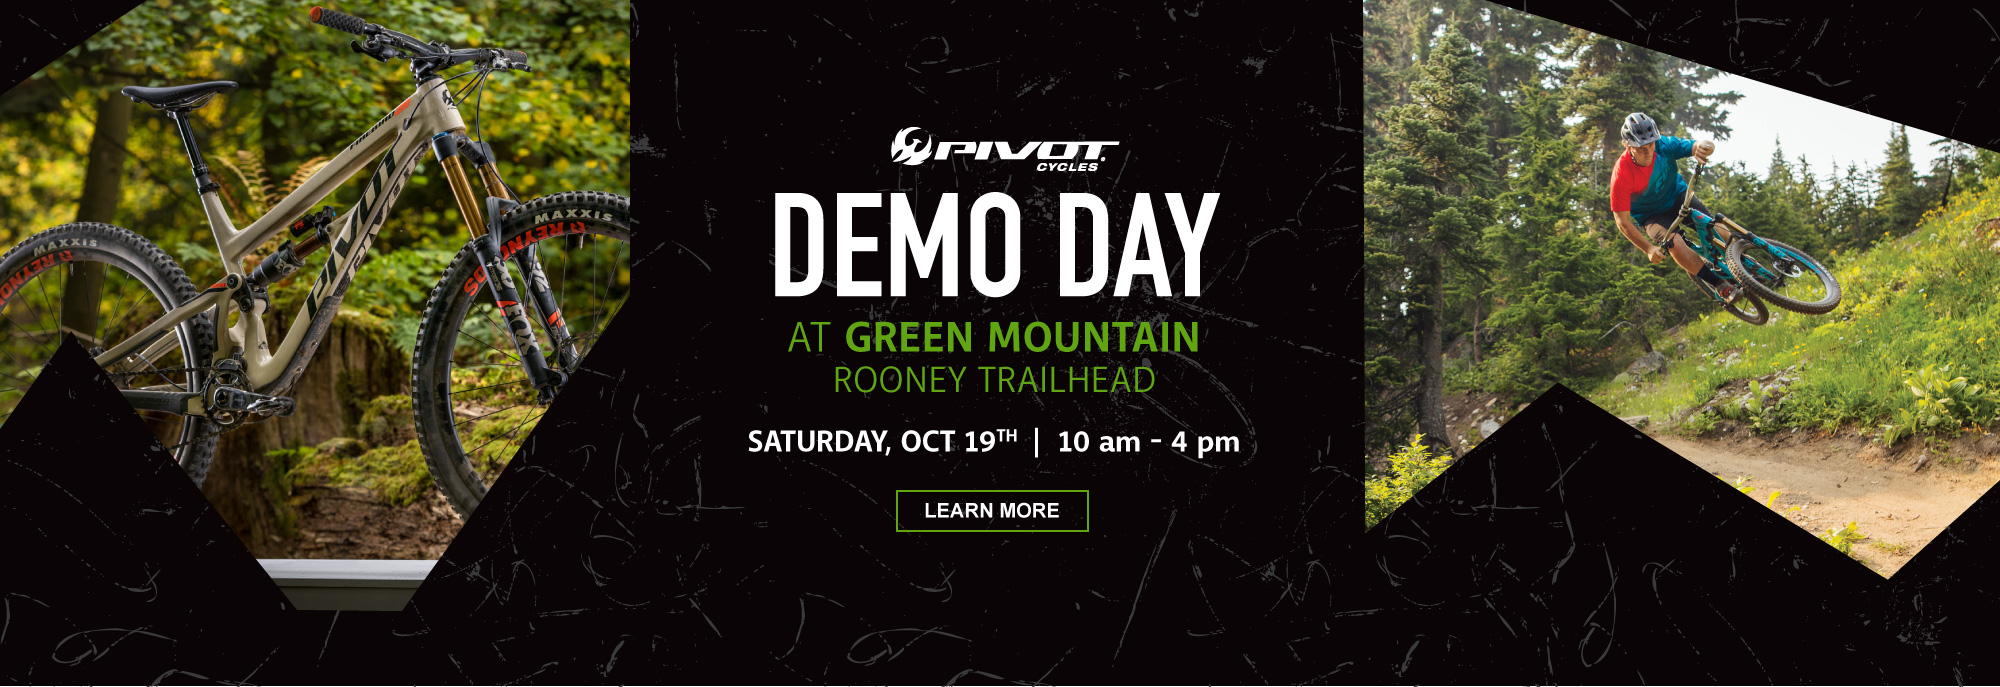 Pivot Cycles Demo Day Green Mountain Colorado October 19, 2019